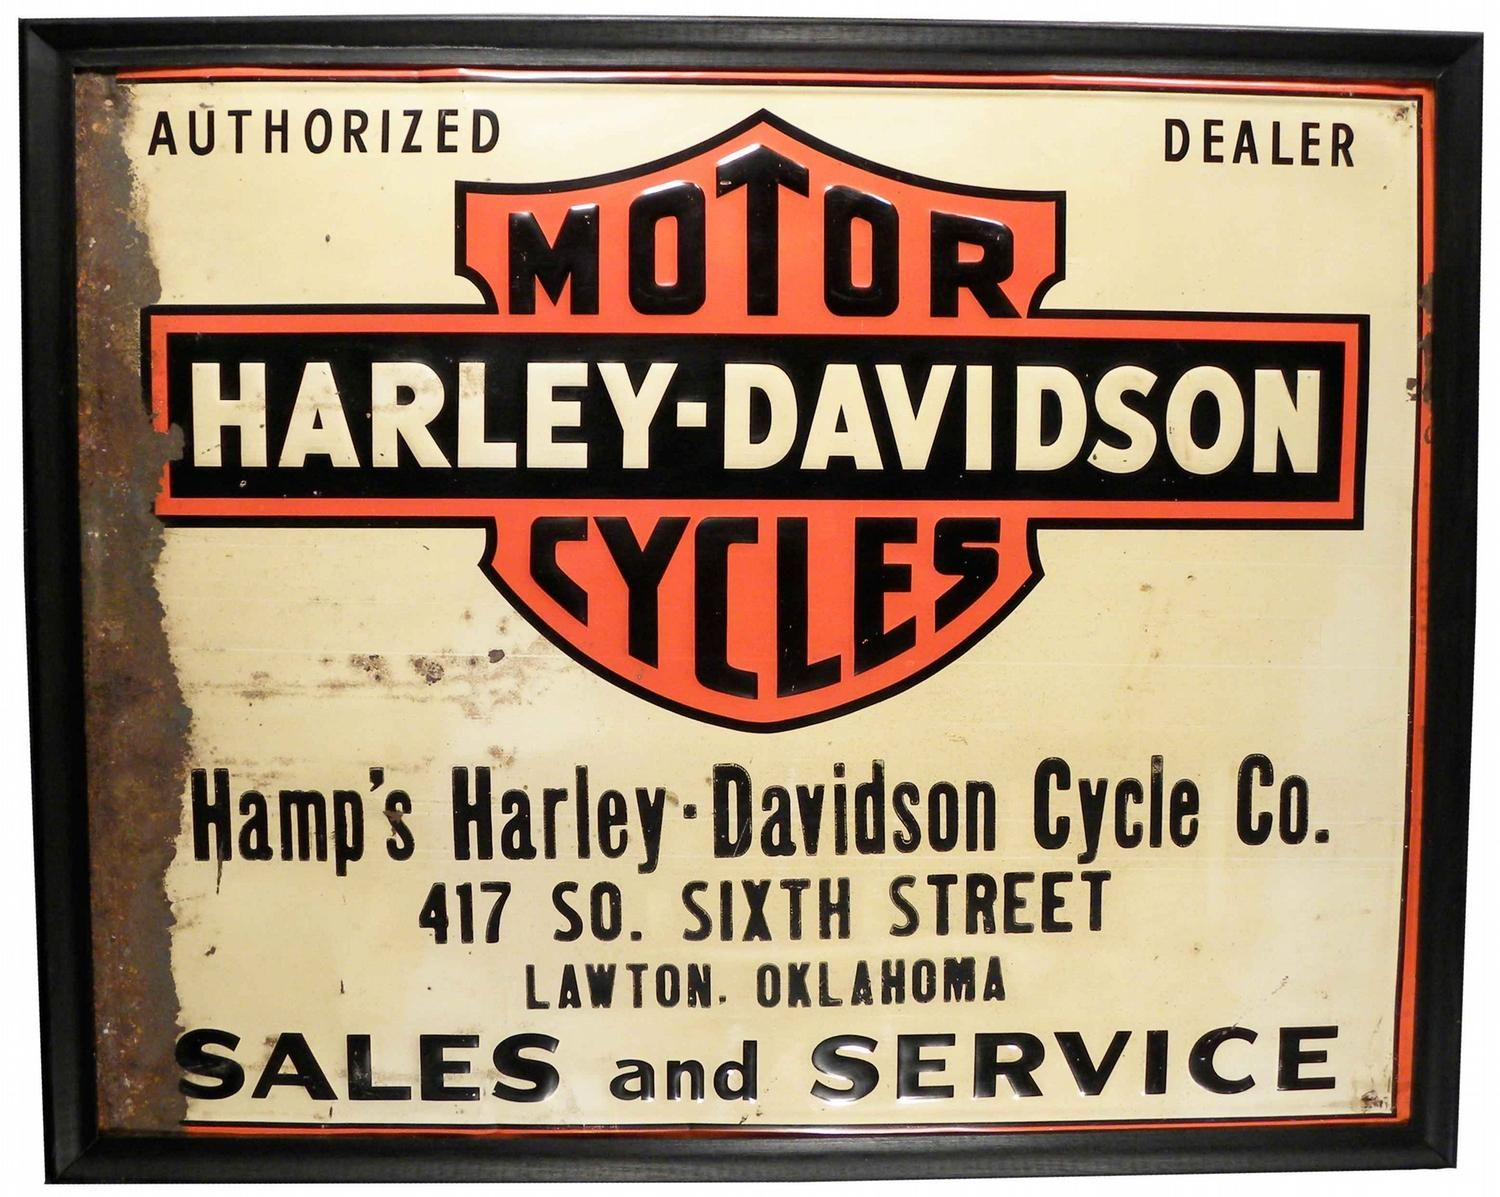 Hamp S Harley Davidson Cycle Co Dealer S Sign Painted Embossed Tin Lawton Oklahoma Circa 1930 S 23 1 2 X Harley Davidson Dealers Harley Harley Davidson